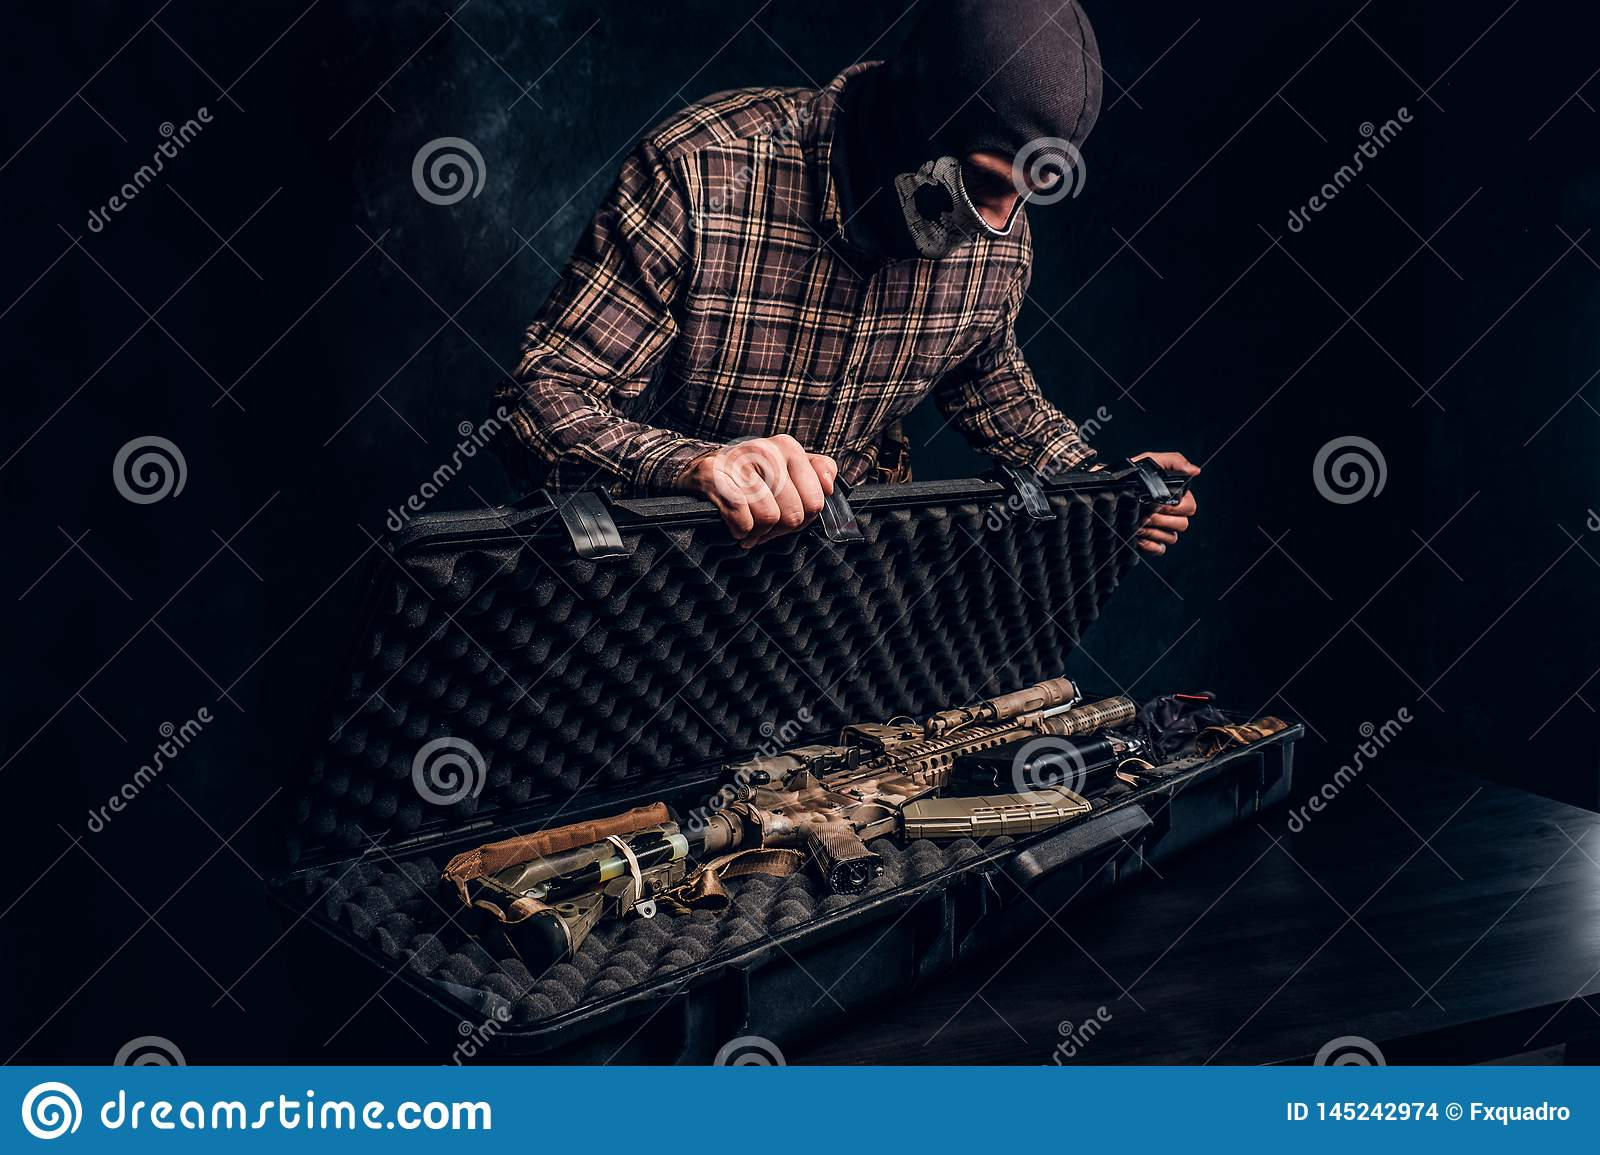 Illegal Sale Of Weapons, Black Market, The Criminal Opens